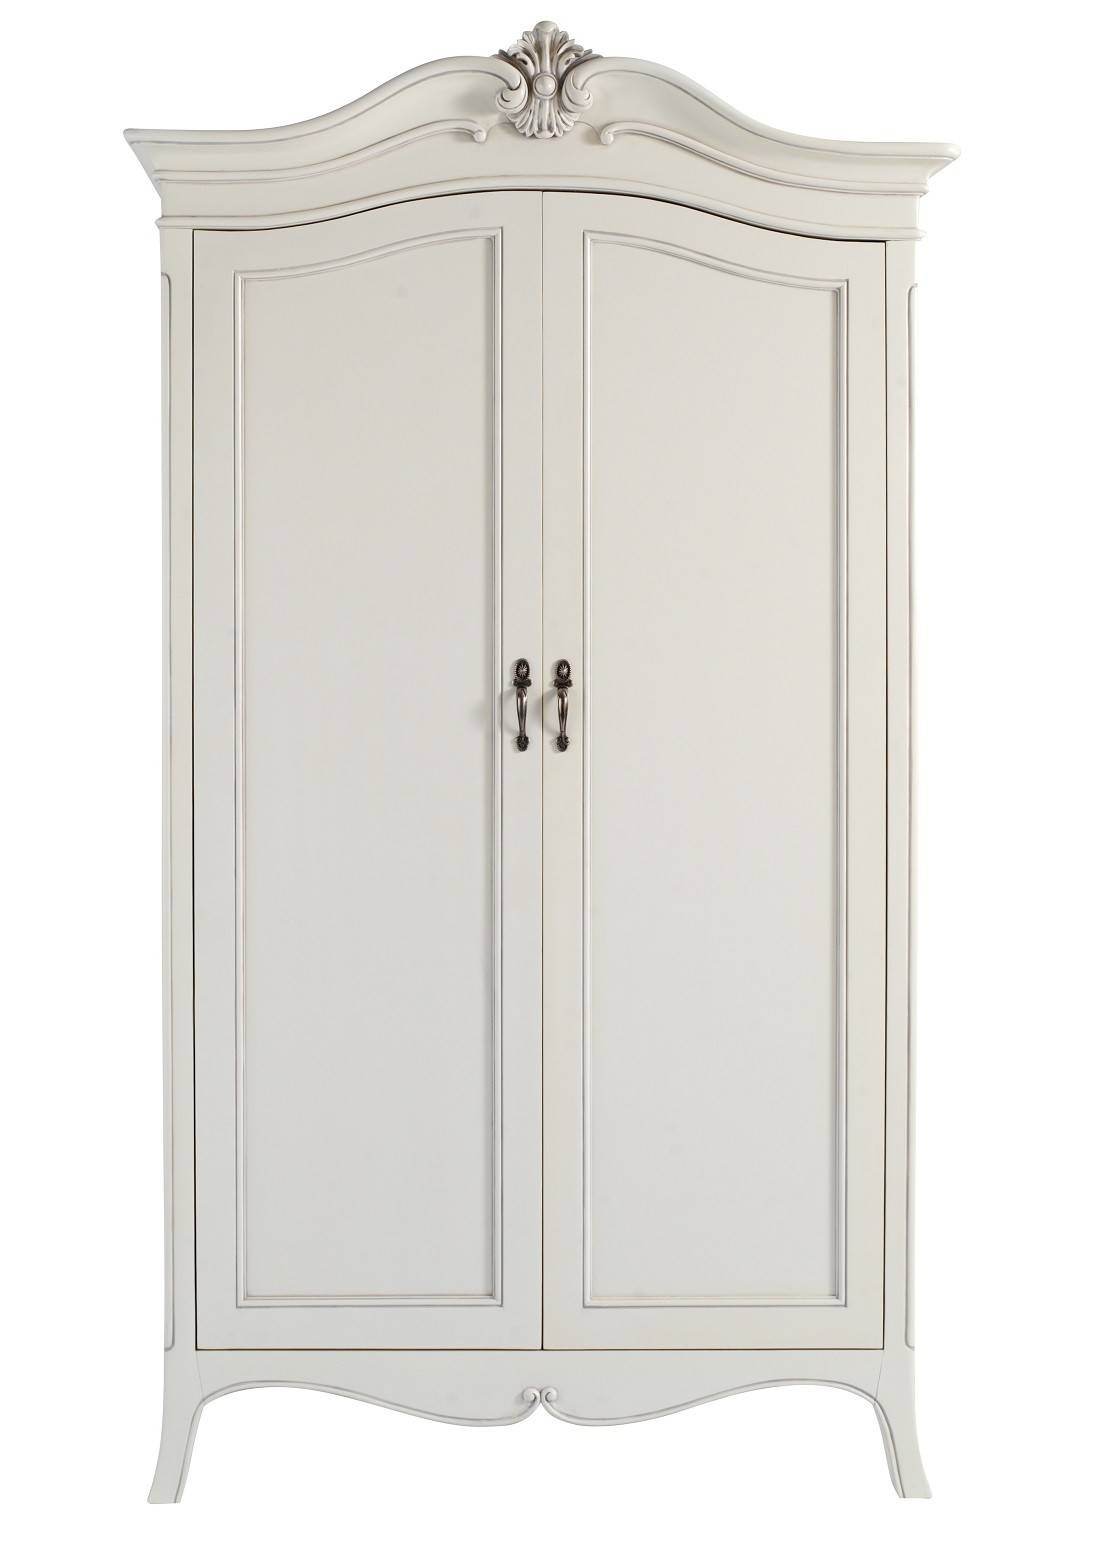 Louis French Ivory Painted 2 Door Double Wardrobe | Oak Furniture Uk intended for French Wardrobes (Image 10 of 15)